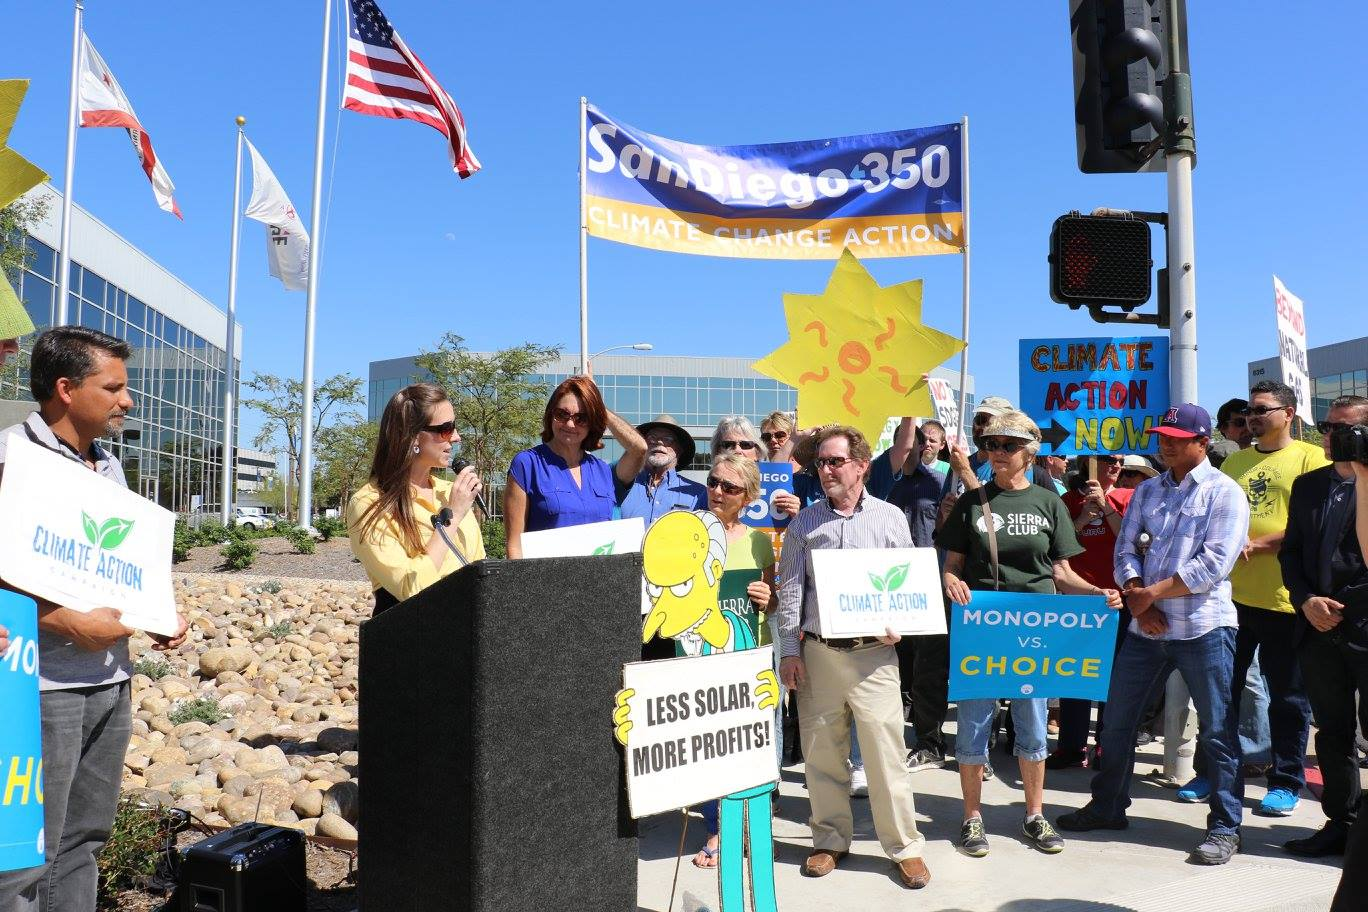 Tara Hammond speaking at a protest at Sempra Energy, which she helped organize, to protect rooftop solar from San Diego Gas & Electric's egregious proposal to hurt clean energy.